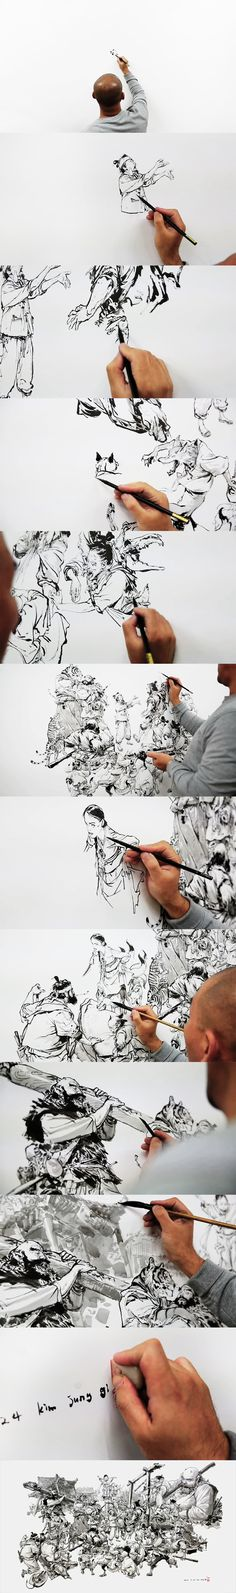 a freehand ink drawing session by Kim Jung Gi at Christie's